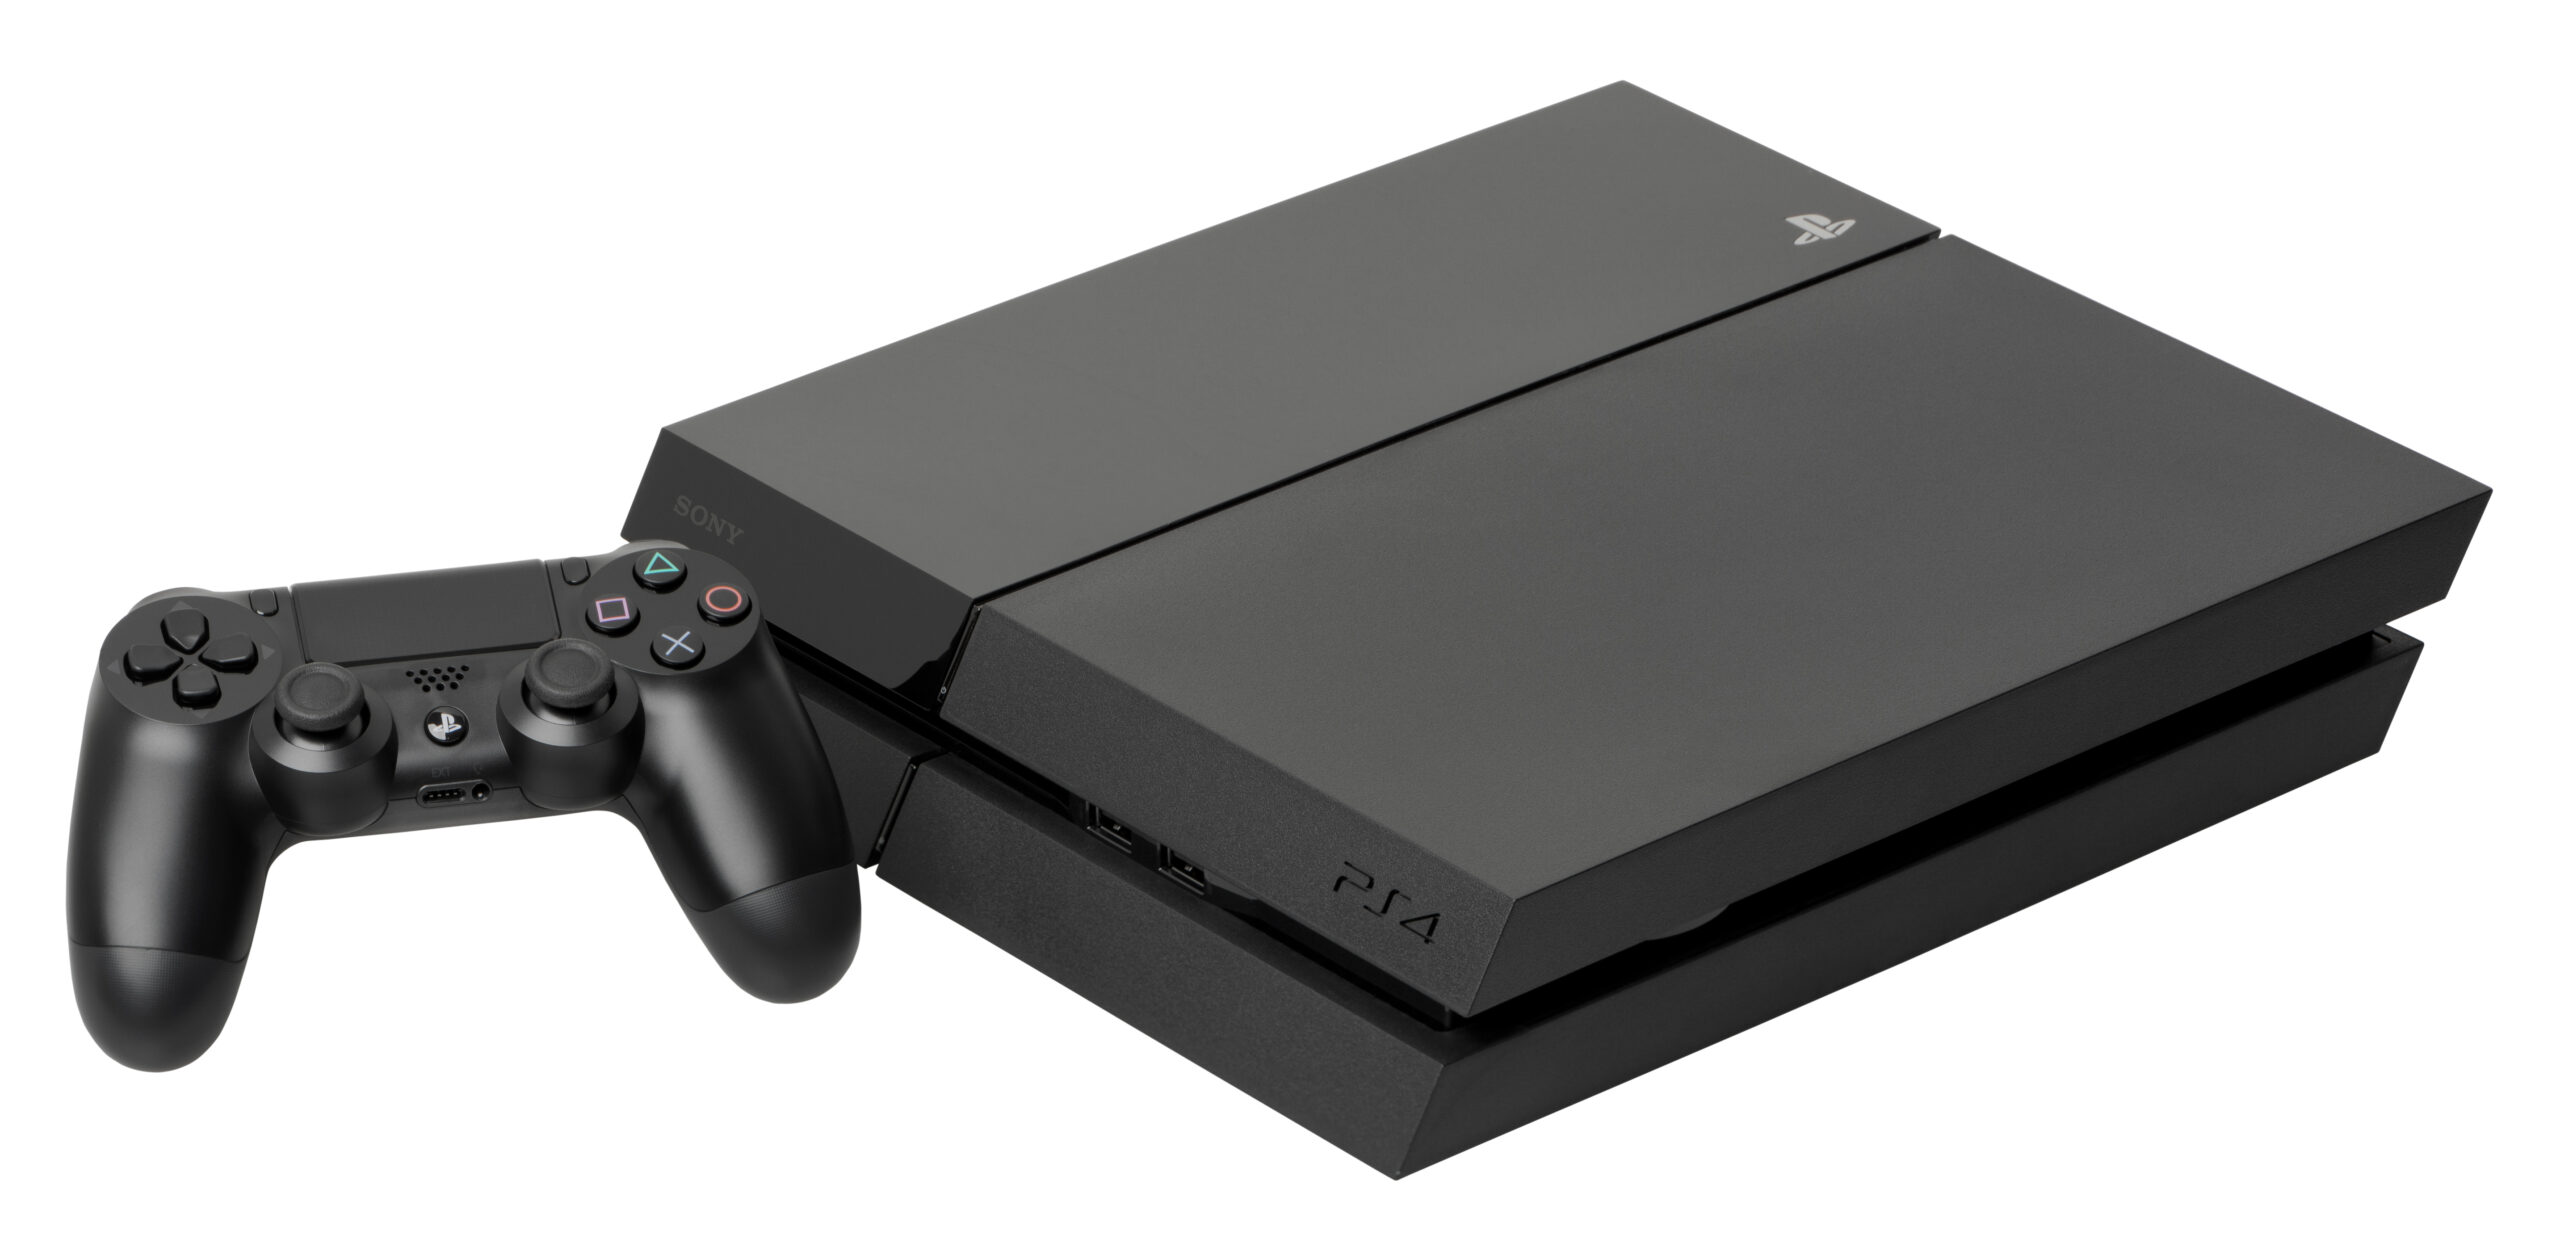 Sony NGP Compatibility With Games And Software